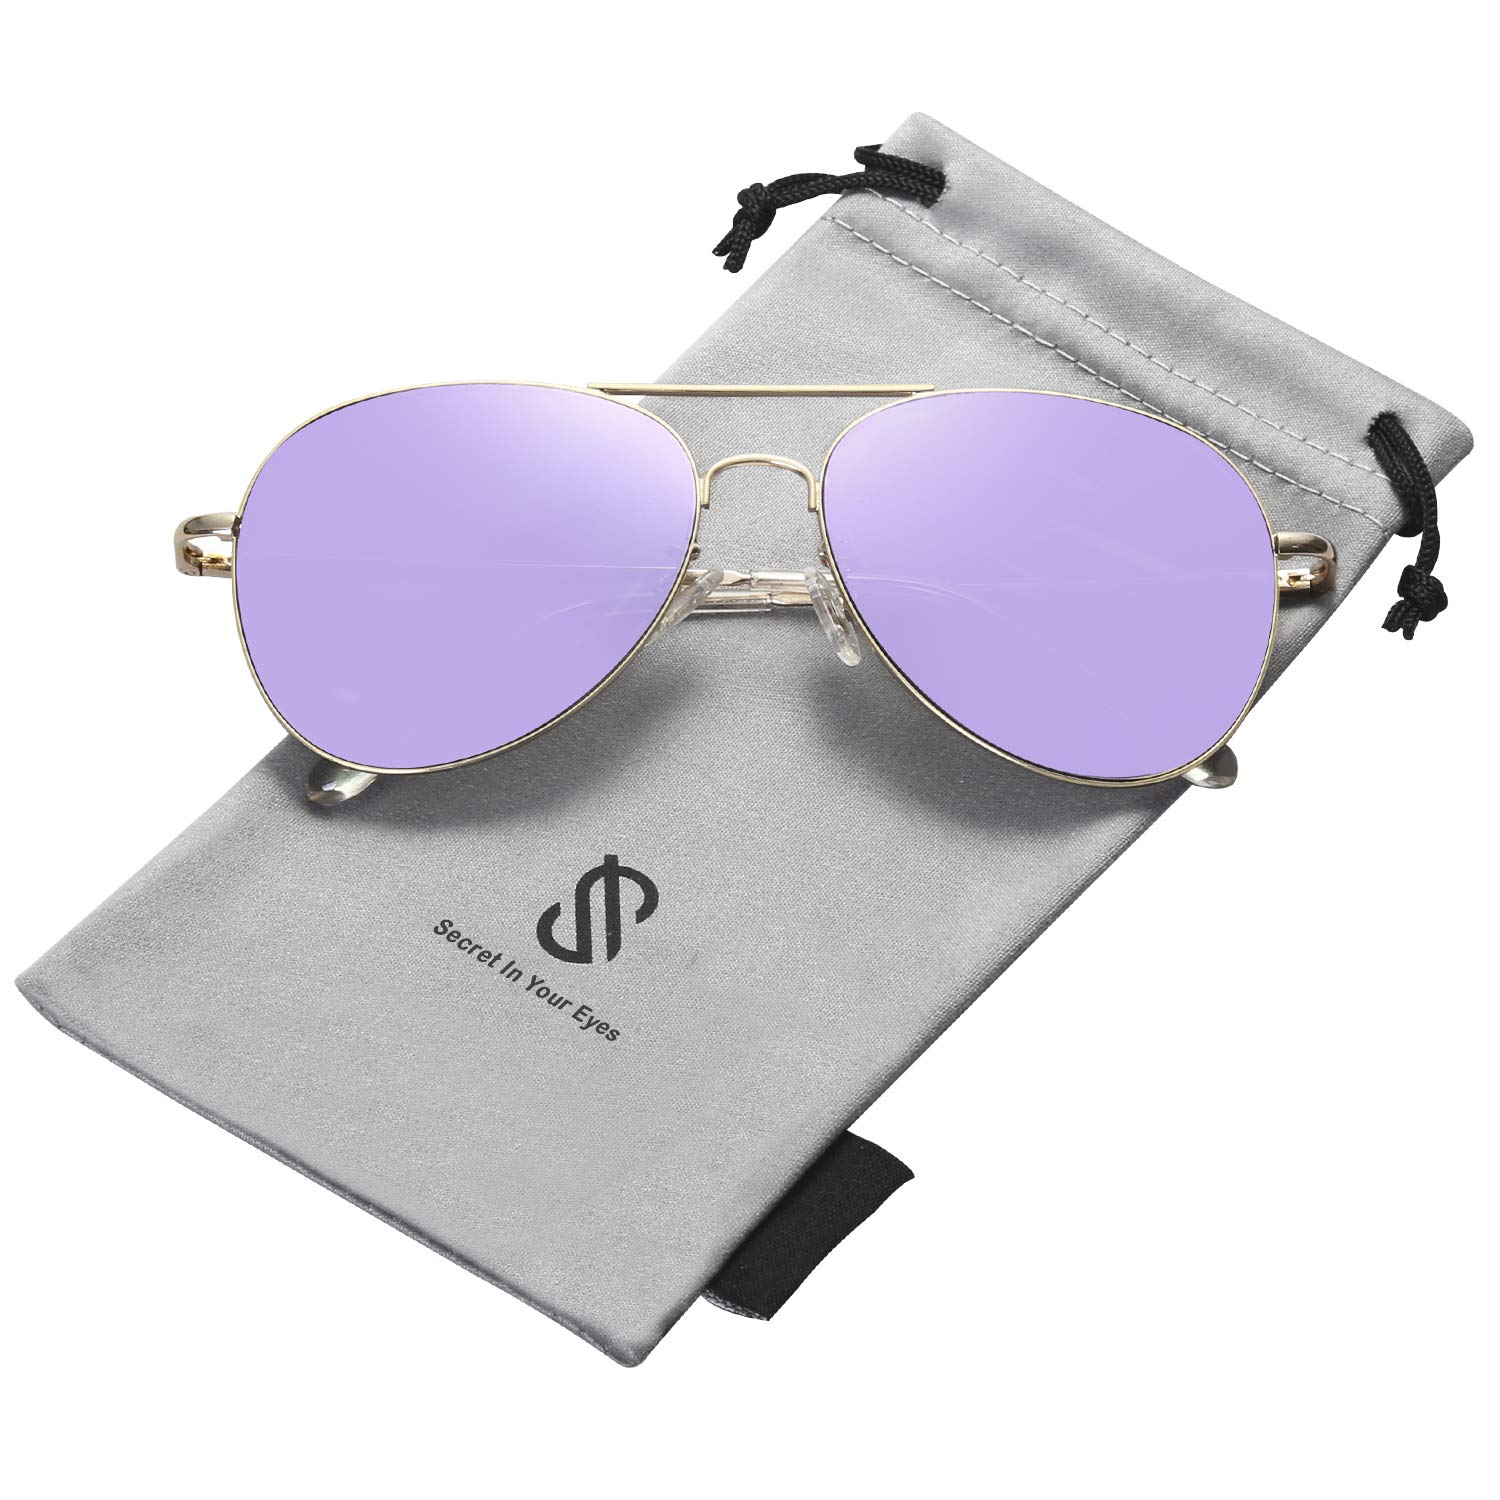 SOJOS Classic Aviator Mirrored Flat Lens Sunglasses Metal Frame with Spring Hinges SJ1030 with Gold Frame/Purple Mirrored Lens by SOJOS